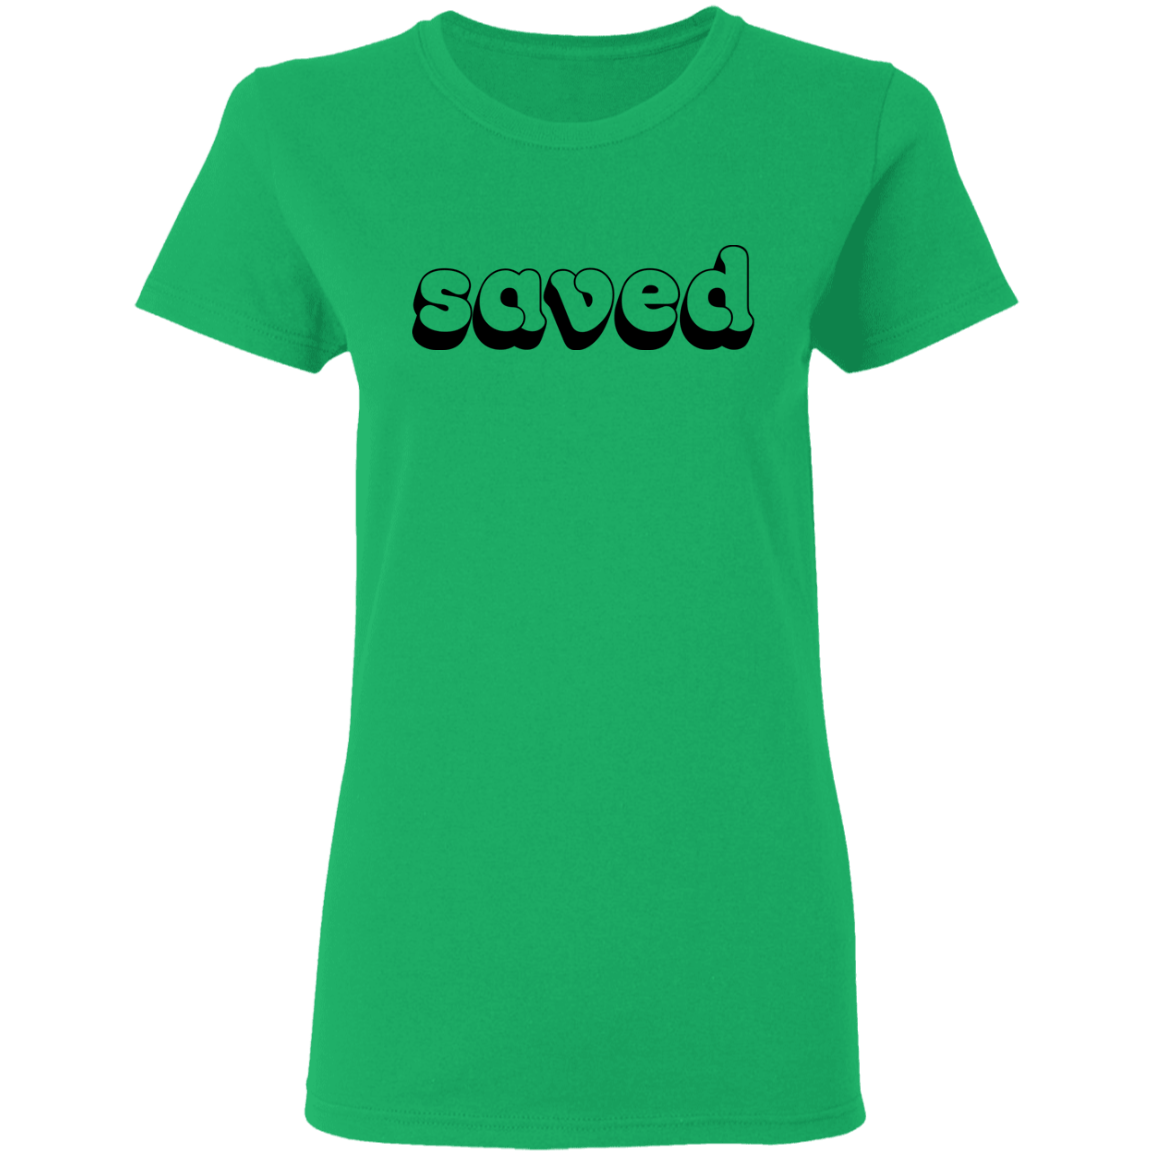 Saved - Premium Tee - My Christian Shop